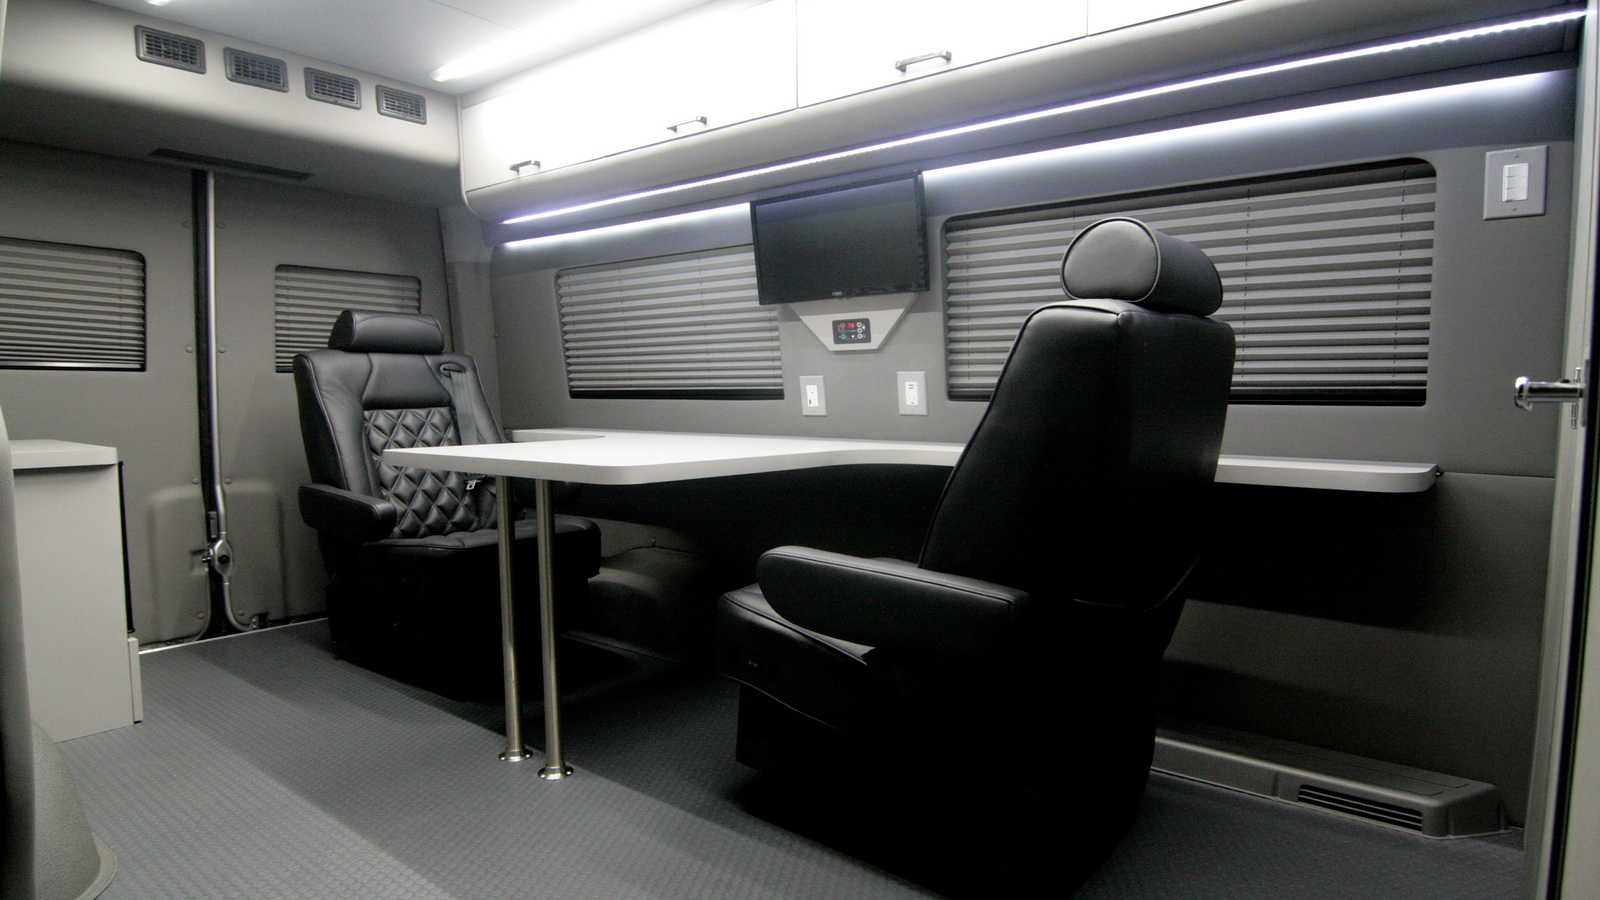 Mobile office conversion vans hq custom design - Home office mobel ...